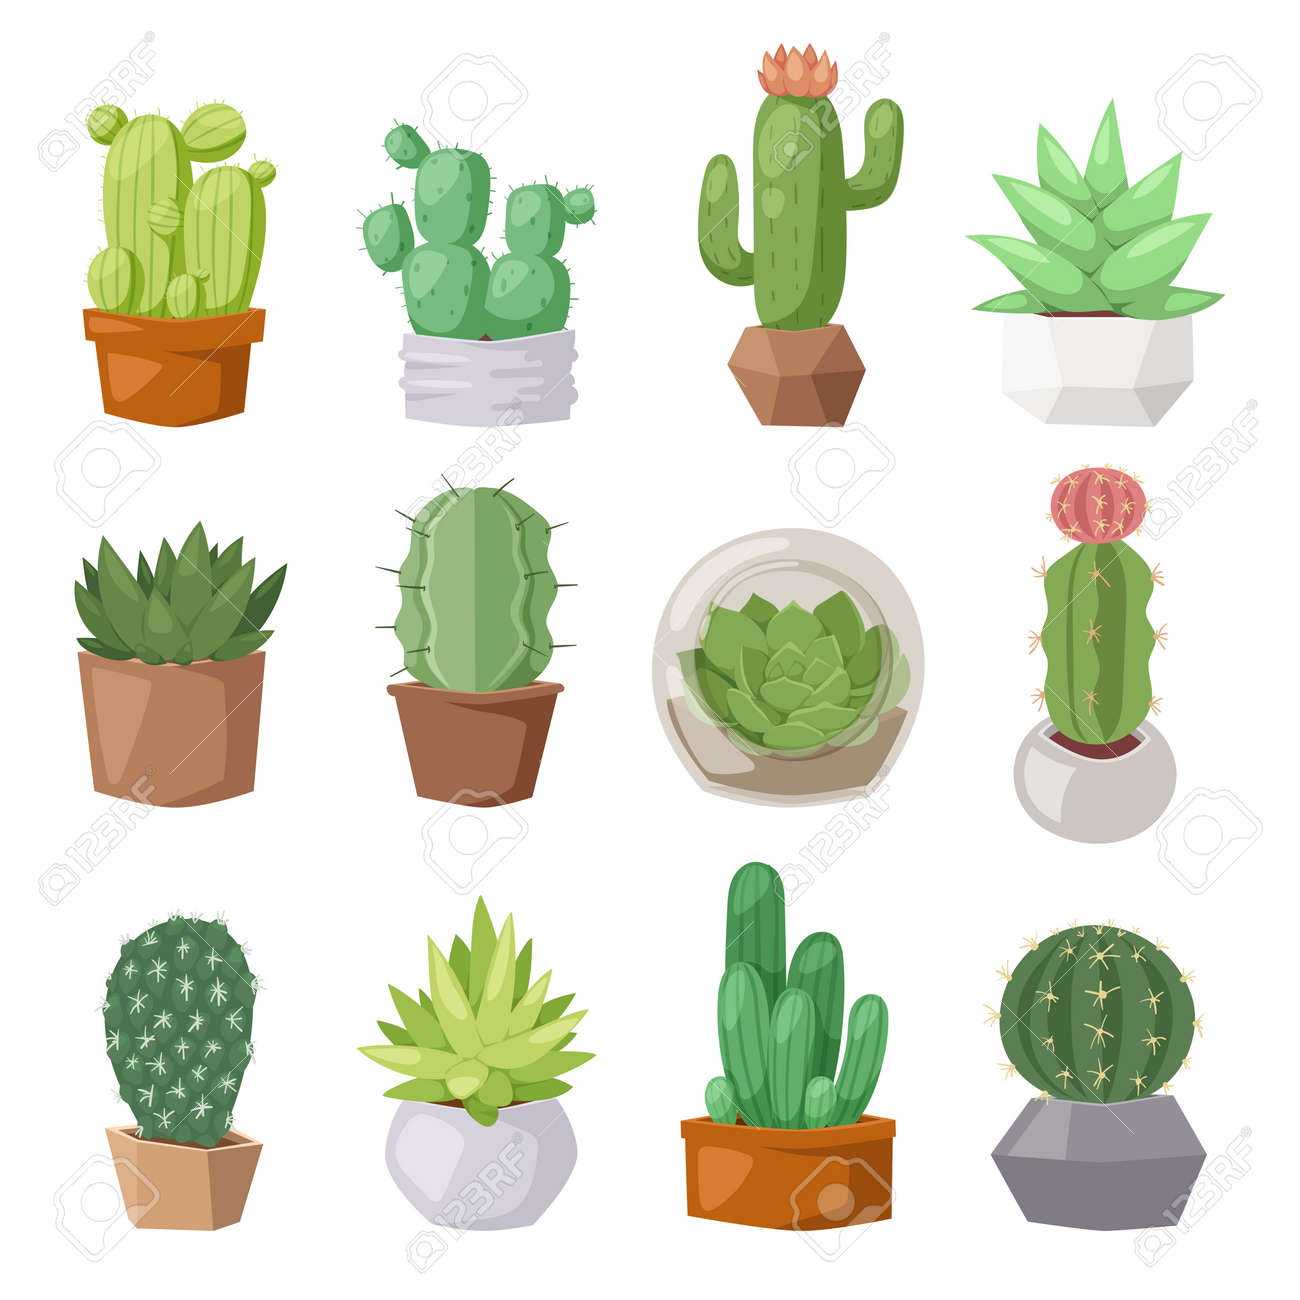 Green desert plant nature cartoon cactus and mexican summer cute